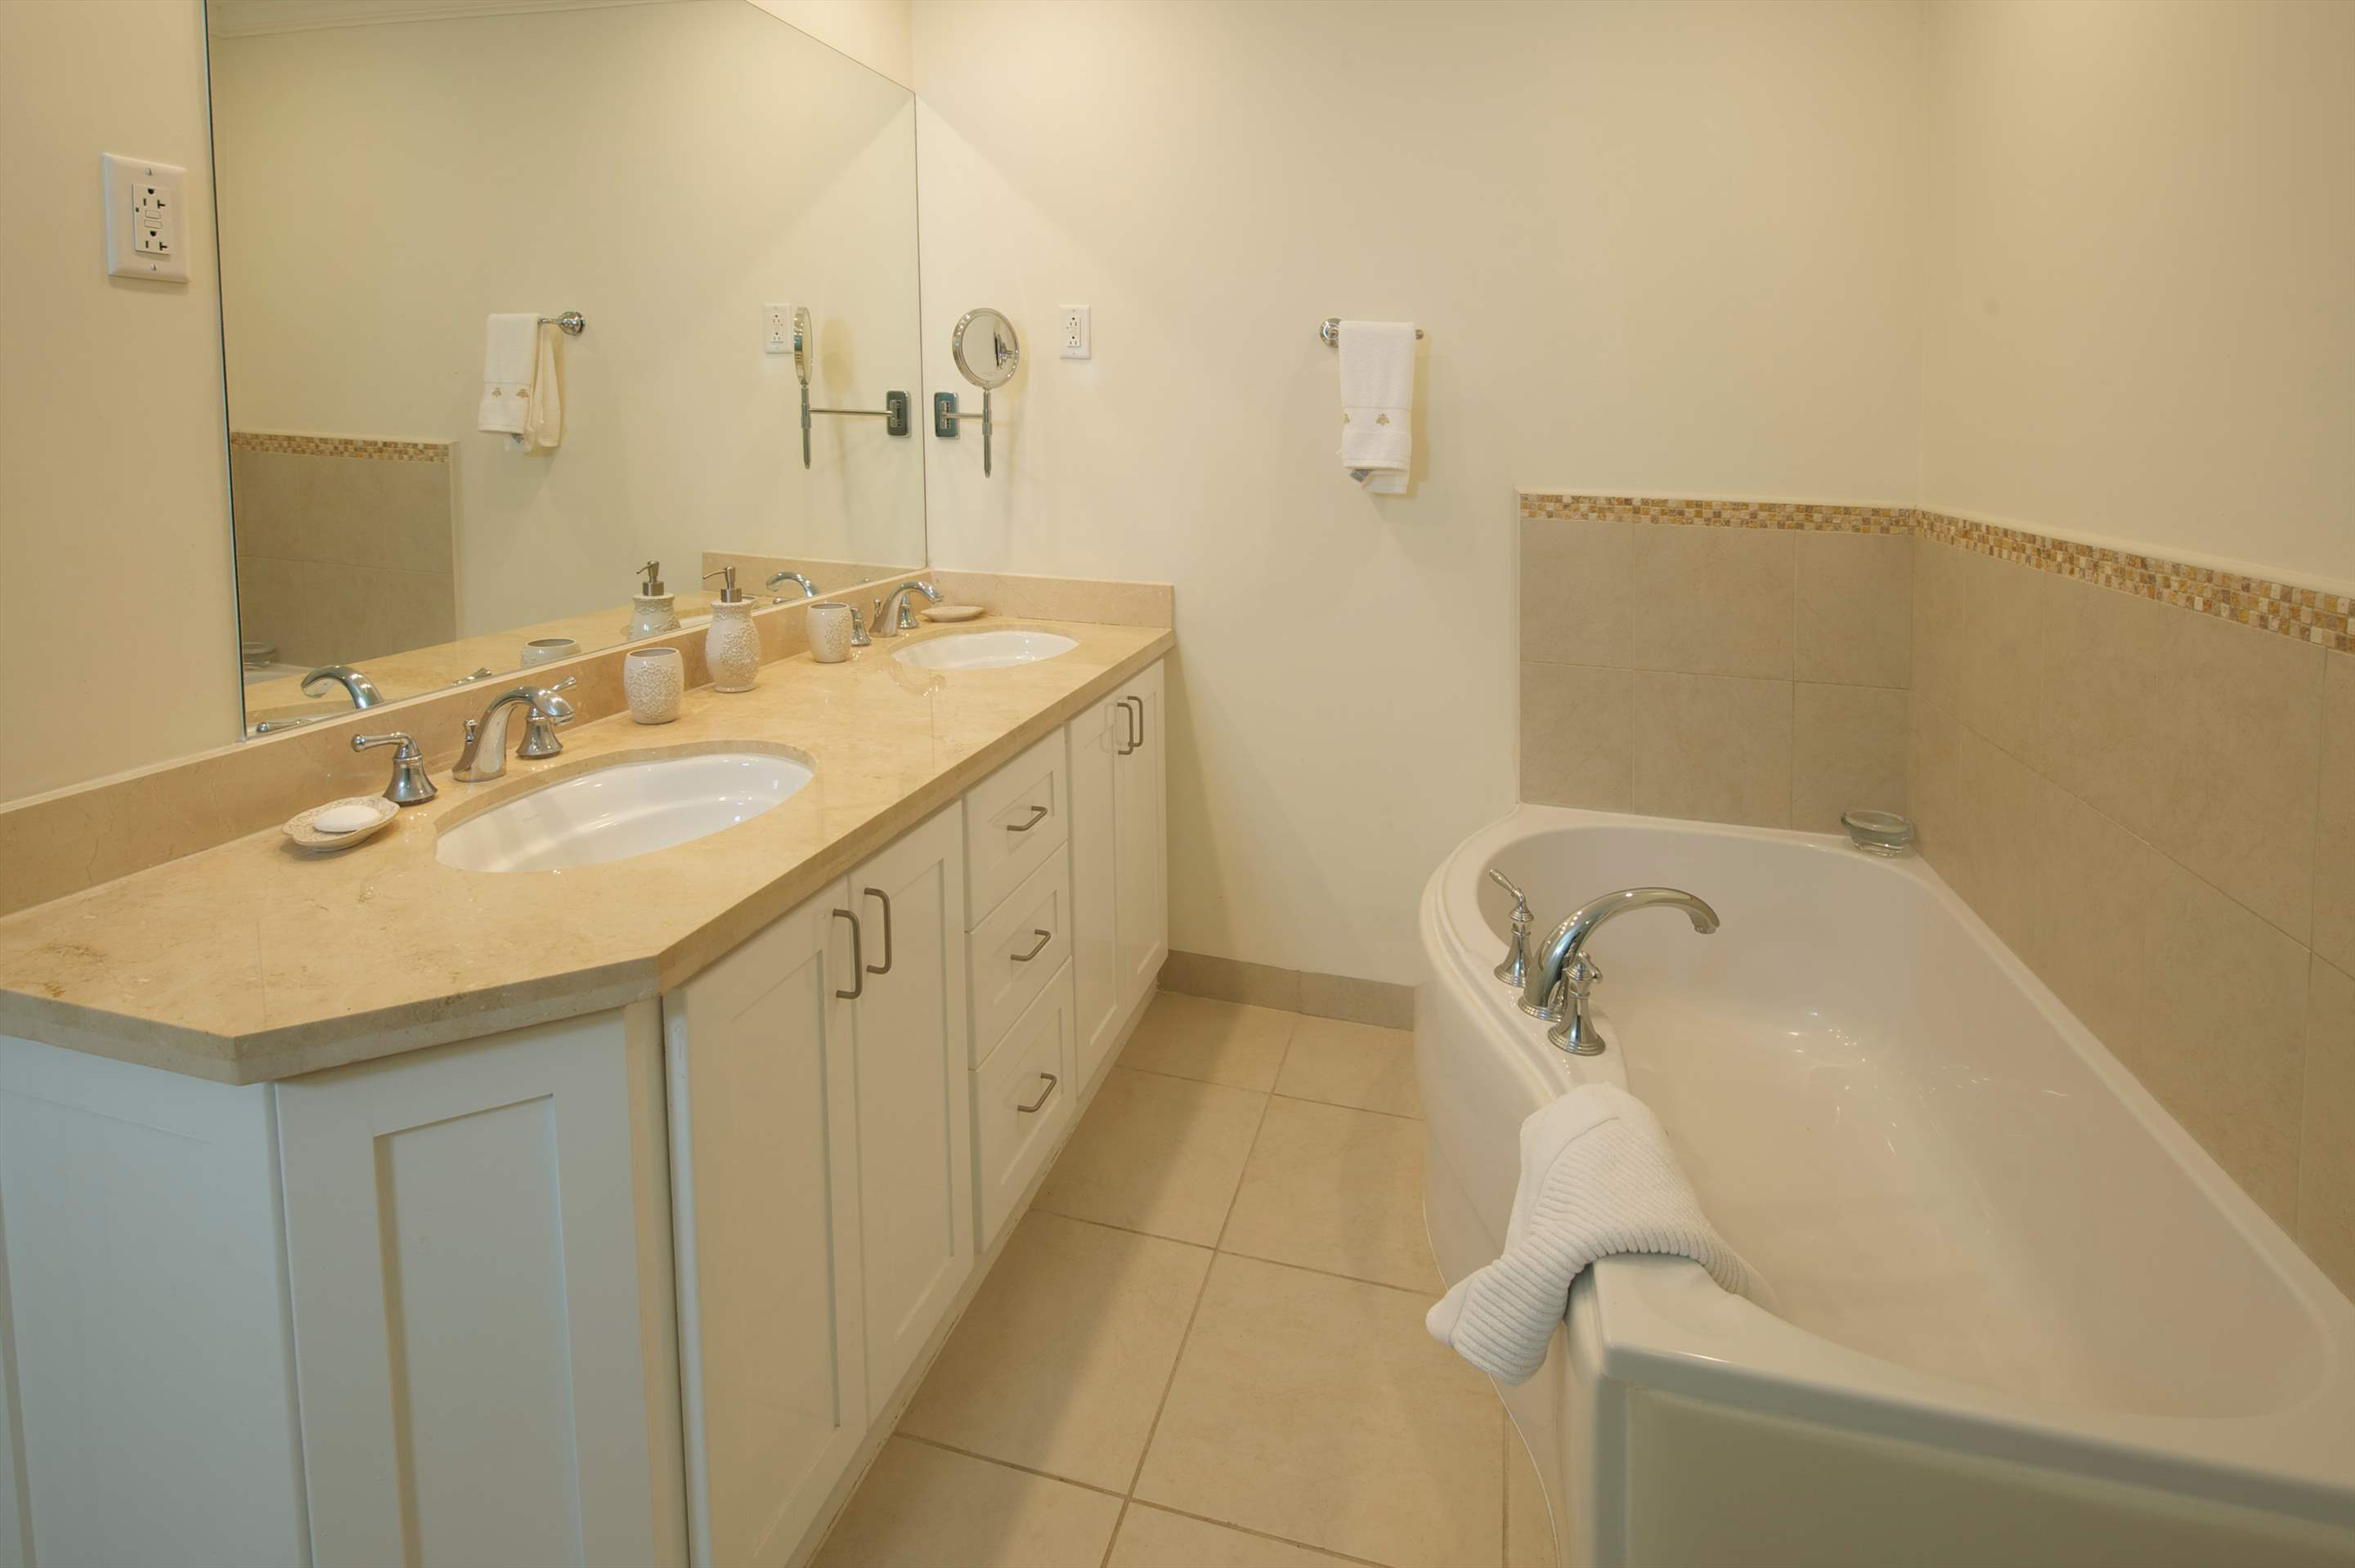 Palm Beach 110, 3 bedroom apartment in St. Lawrence Gap & South Coast, Barbados Photo #10